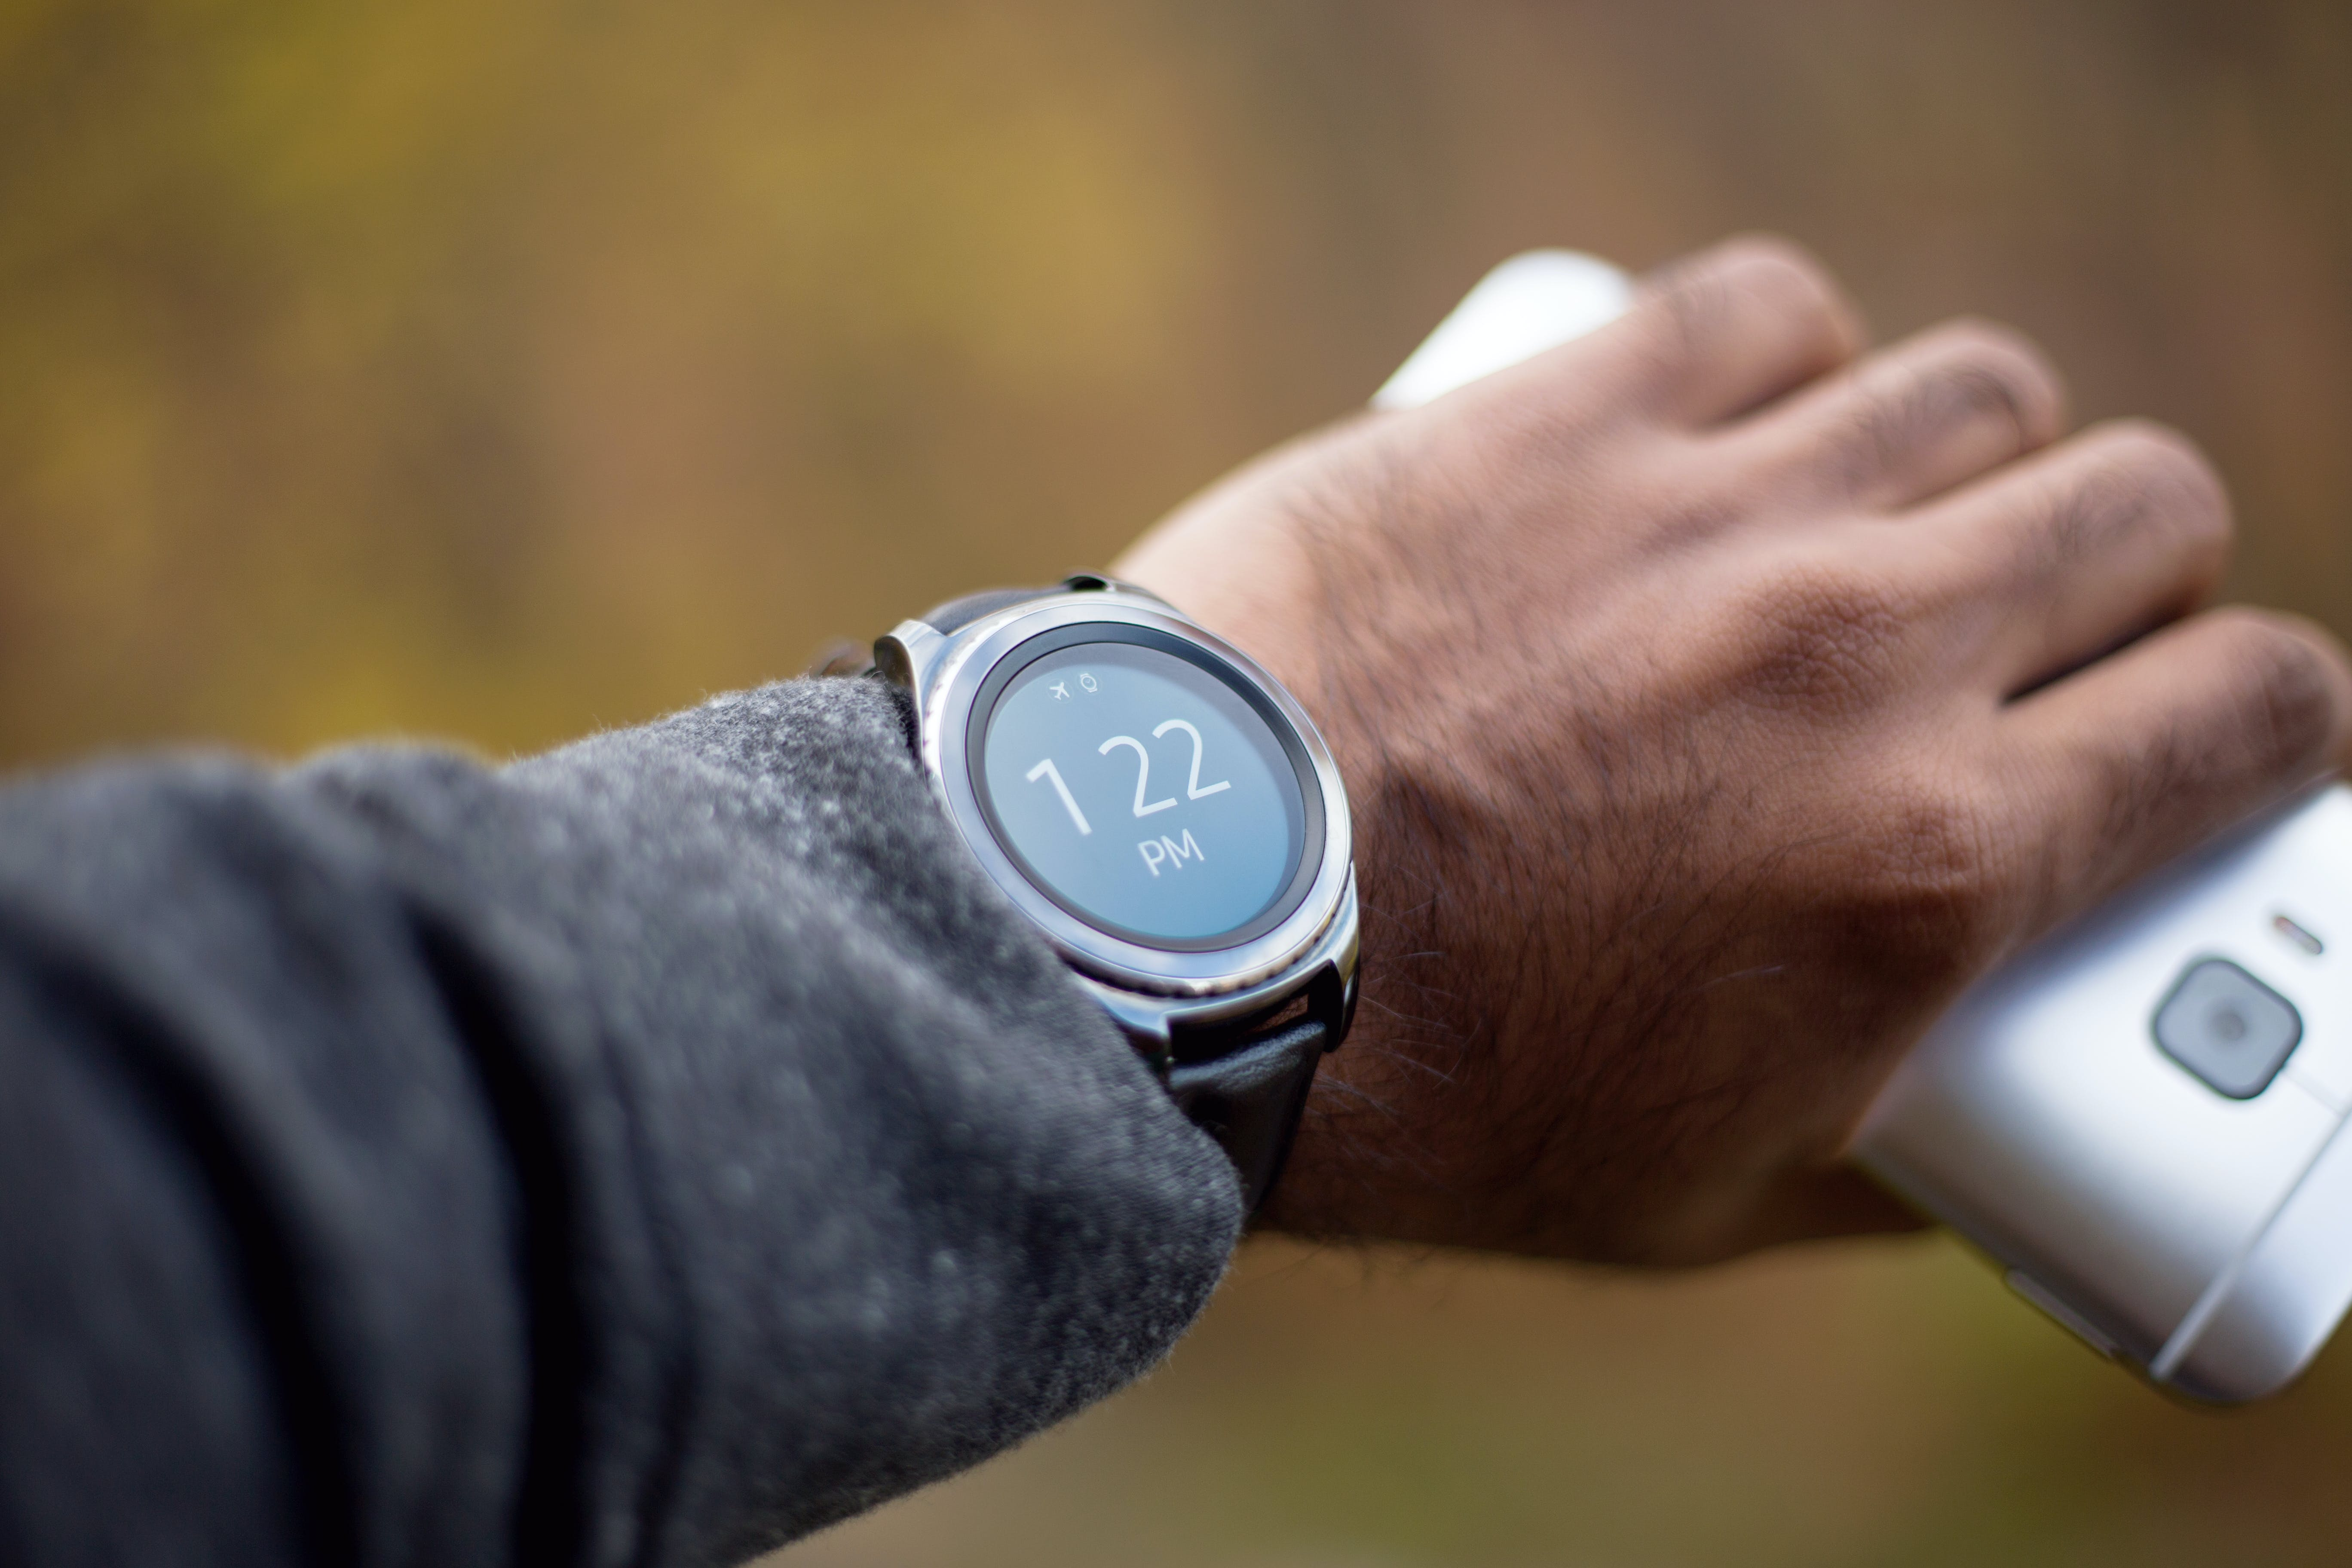 Silver-colored Smartwatch With Black Strap on Person's Wrist